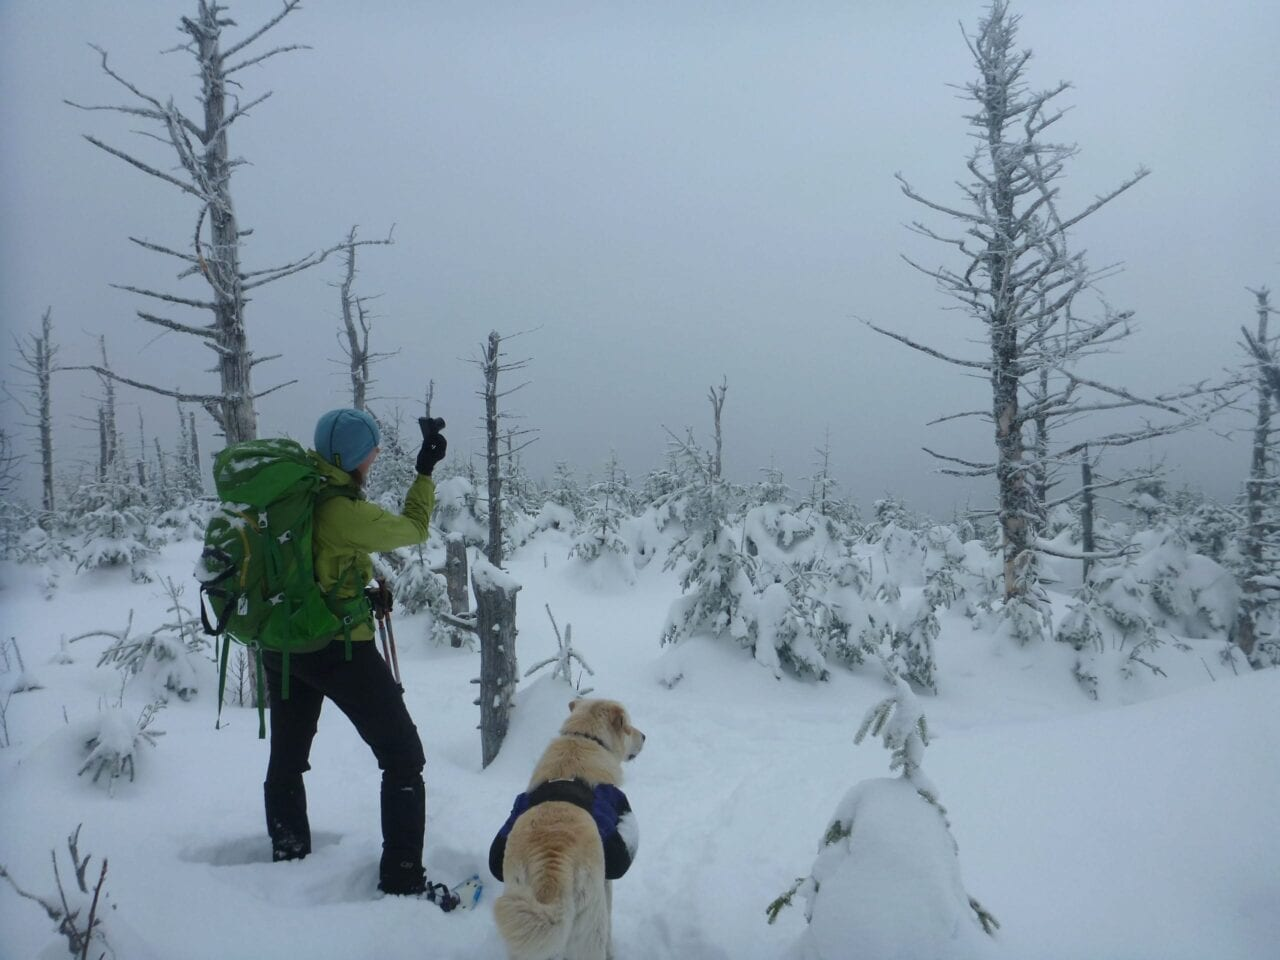 A hiker and a yellow labrador look out at a bbank of fog and snow-covered trees.